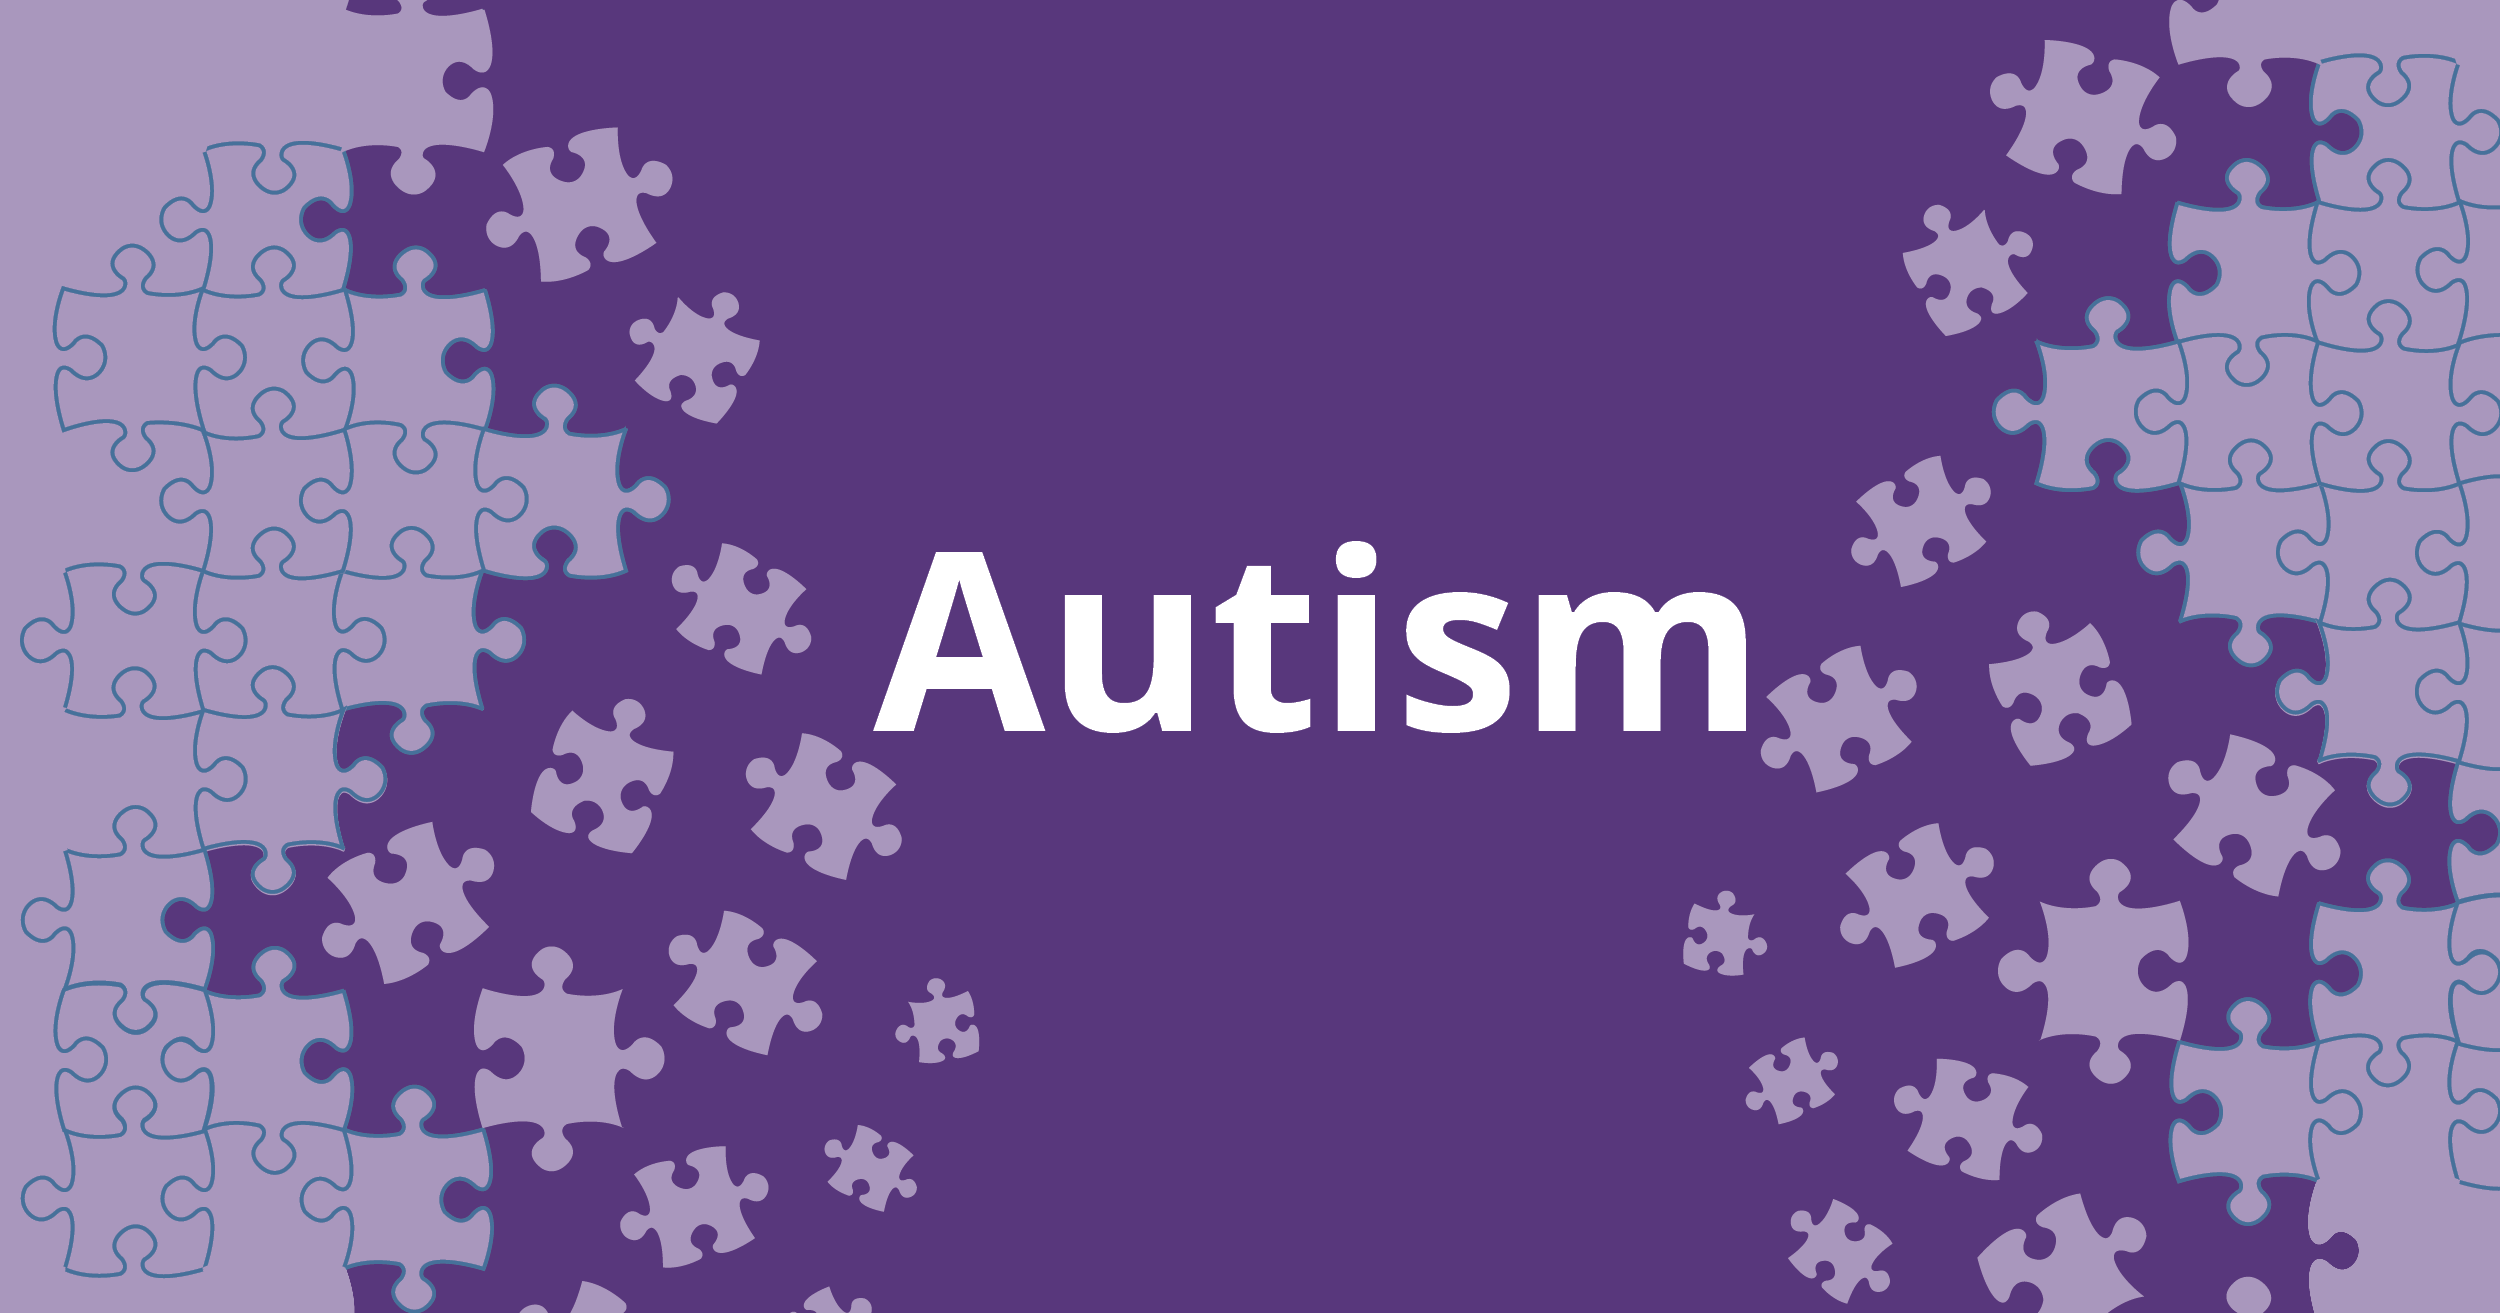 Talking about autism